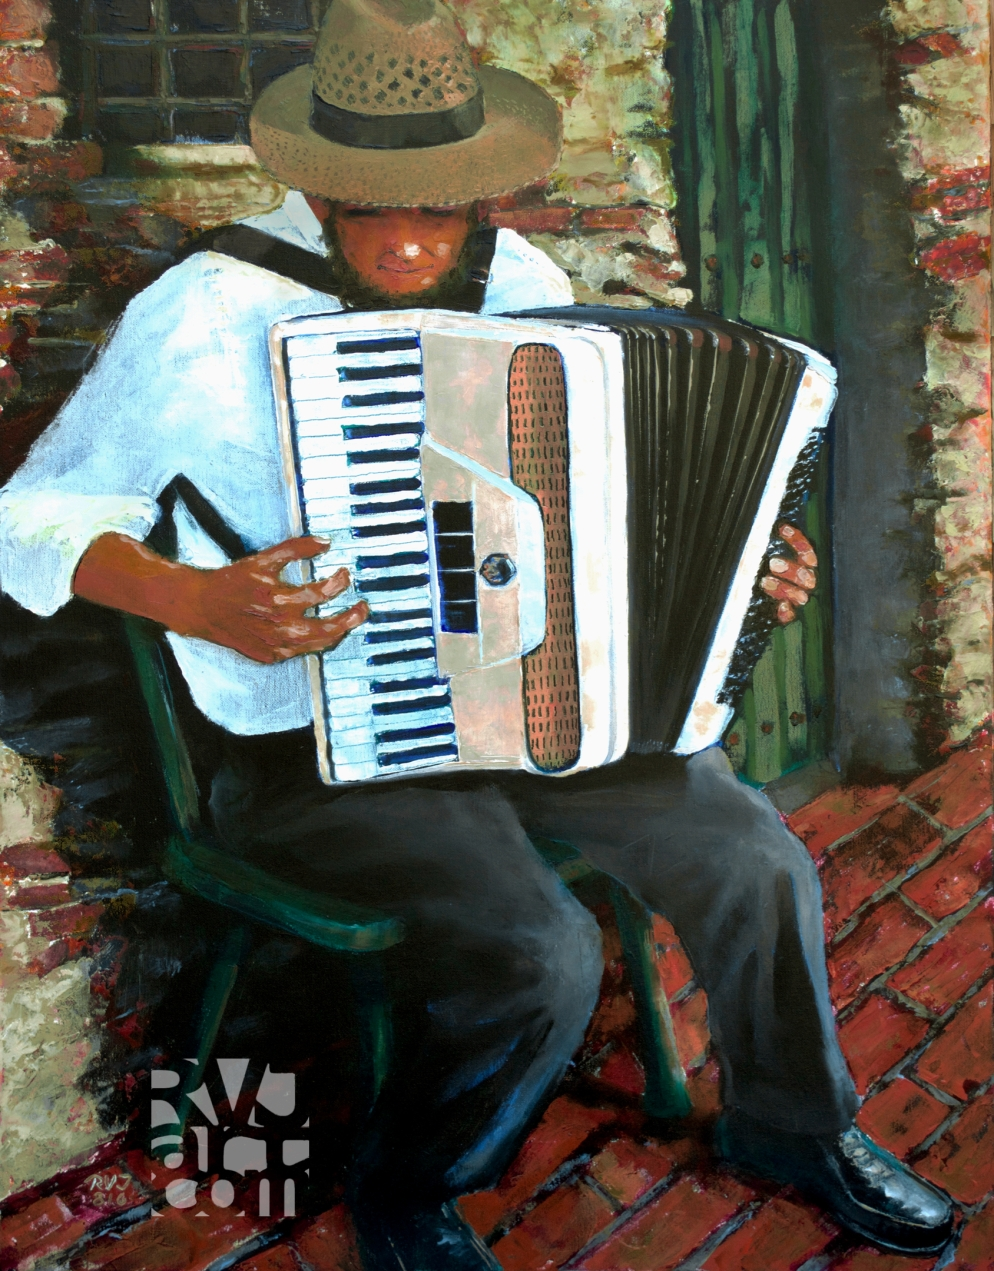 Chromatic Accordionist, España, oil painting by Roger Vincent Jasaitis, Copyright 2016, RVJart.com